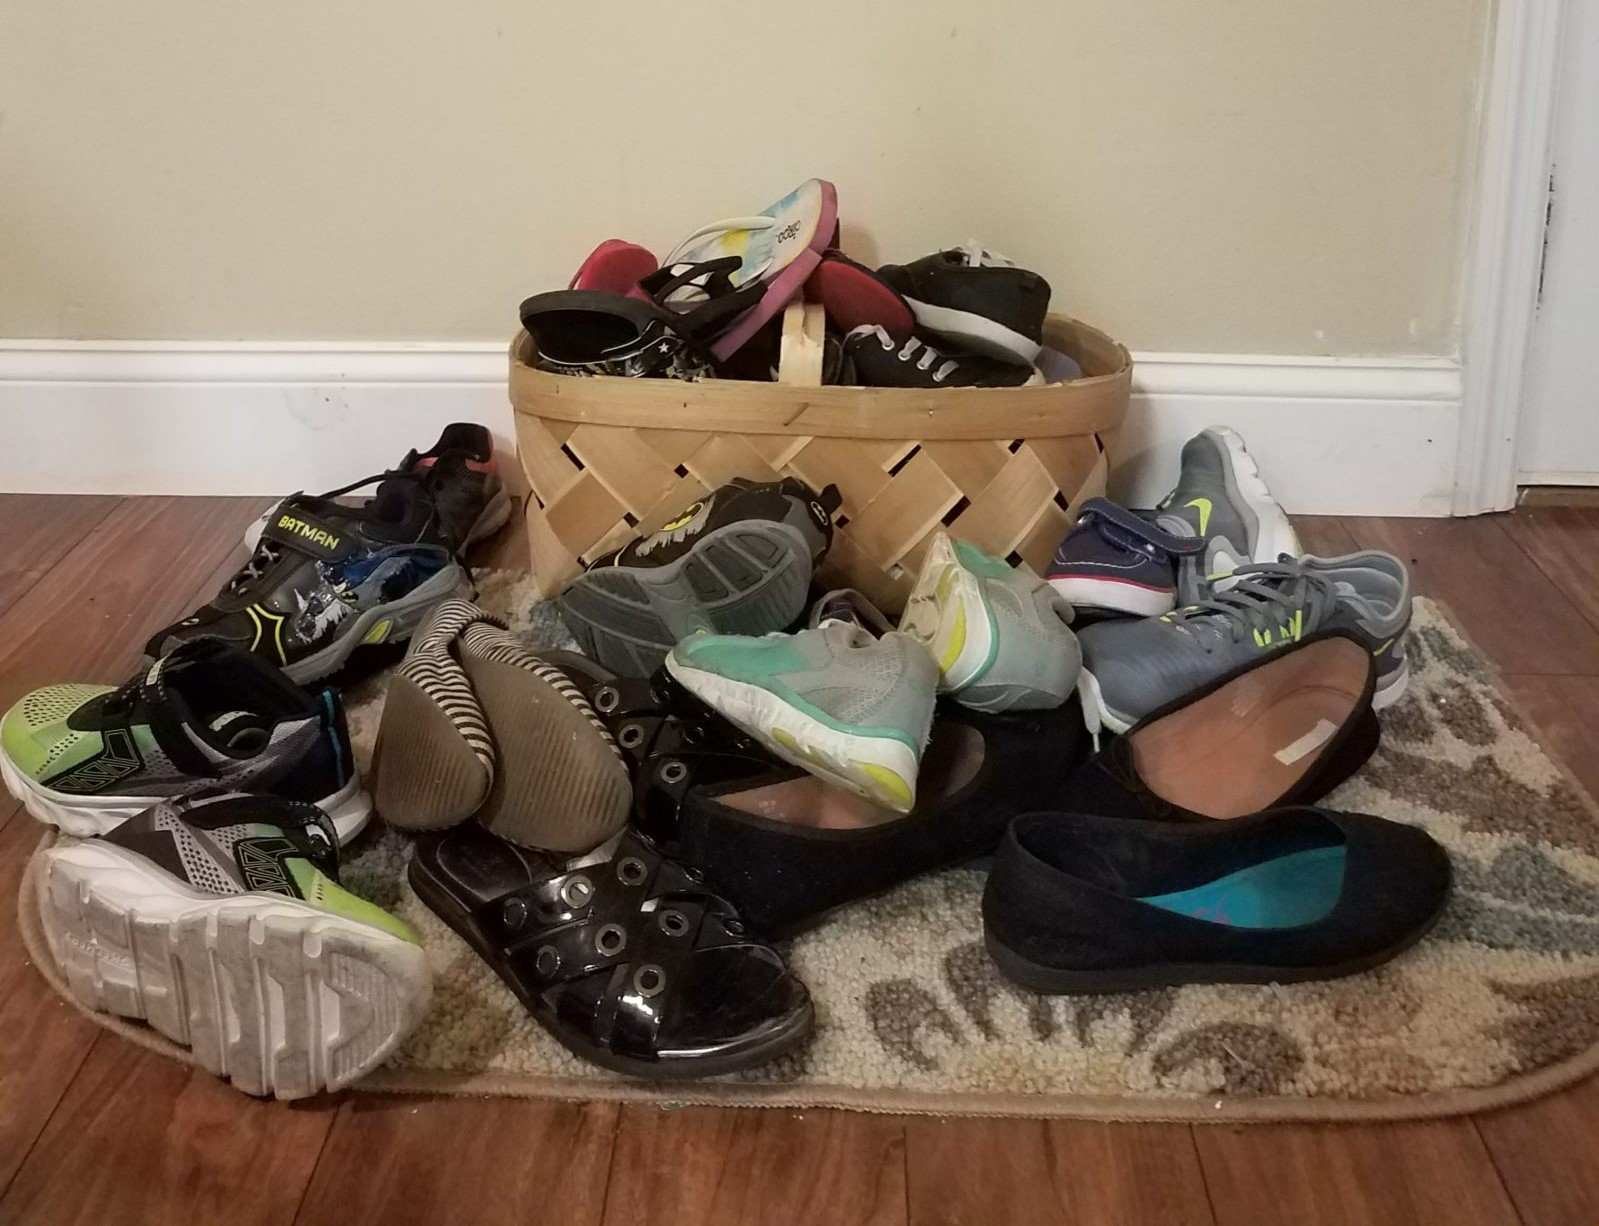 Cluttered shoes